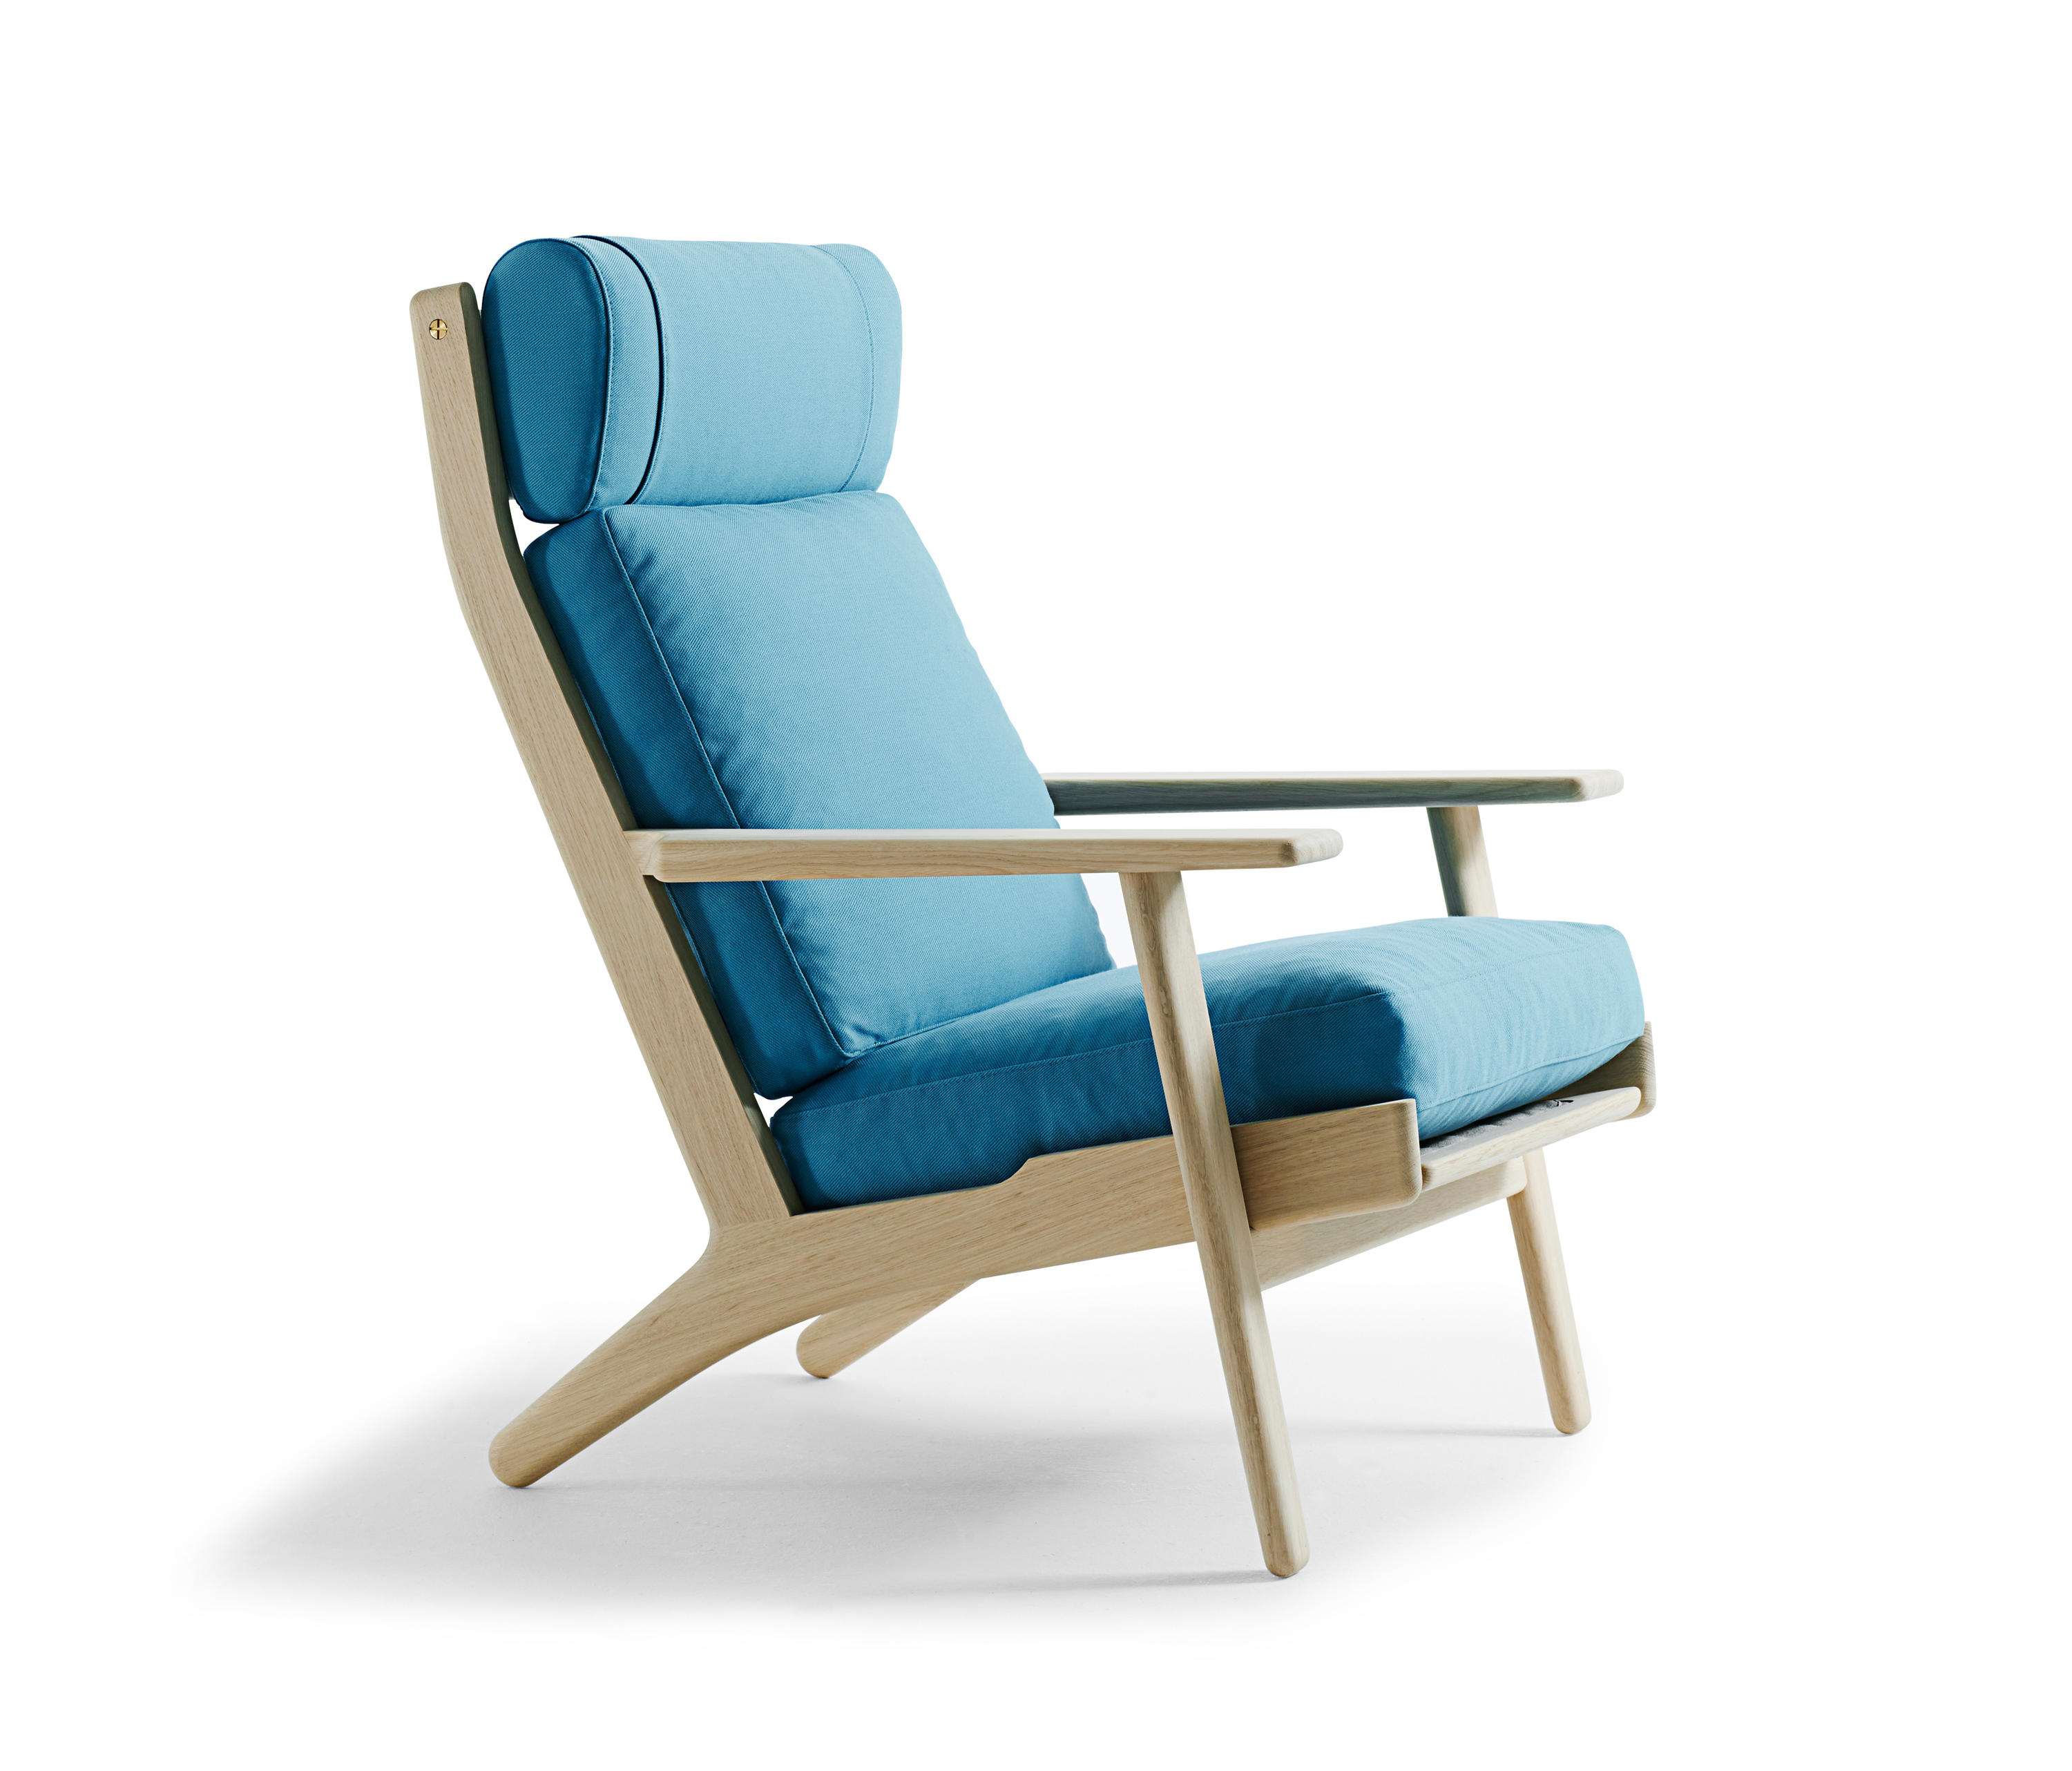 Best Easy Chair For Back Buy The Swedese Primo Easy Chair High Back At Nest Co Uk, Most